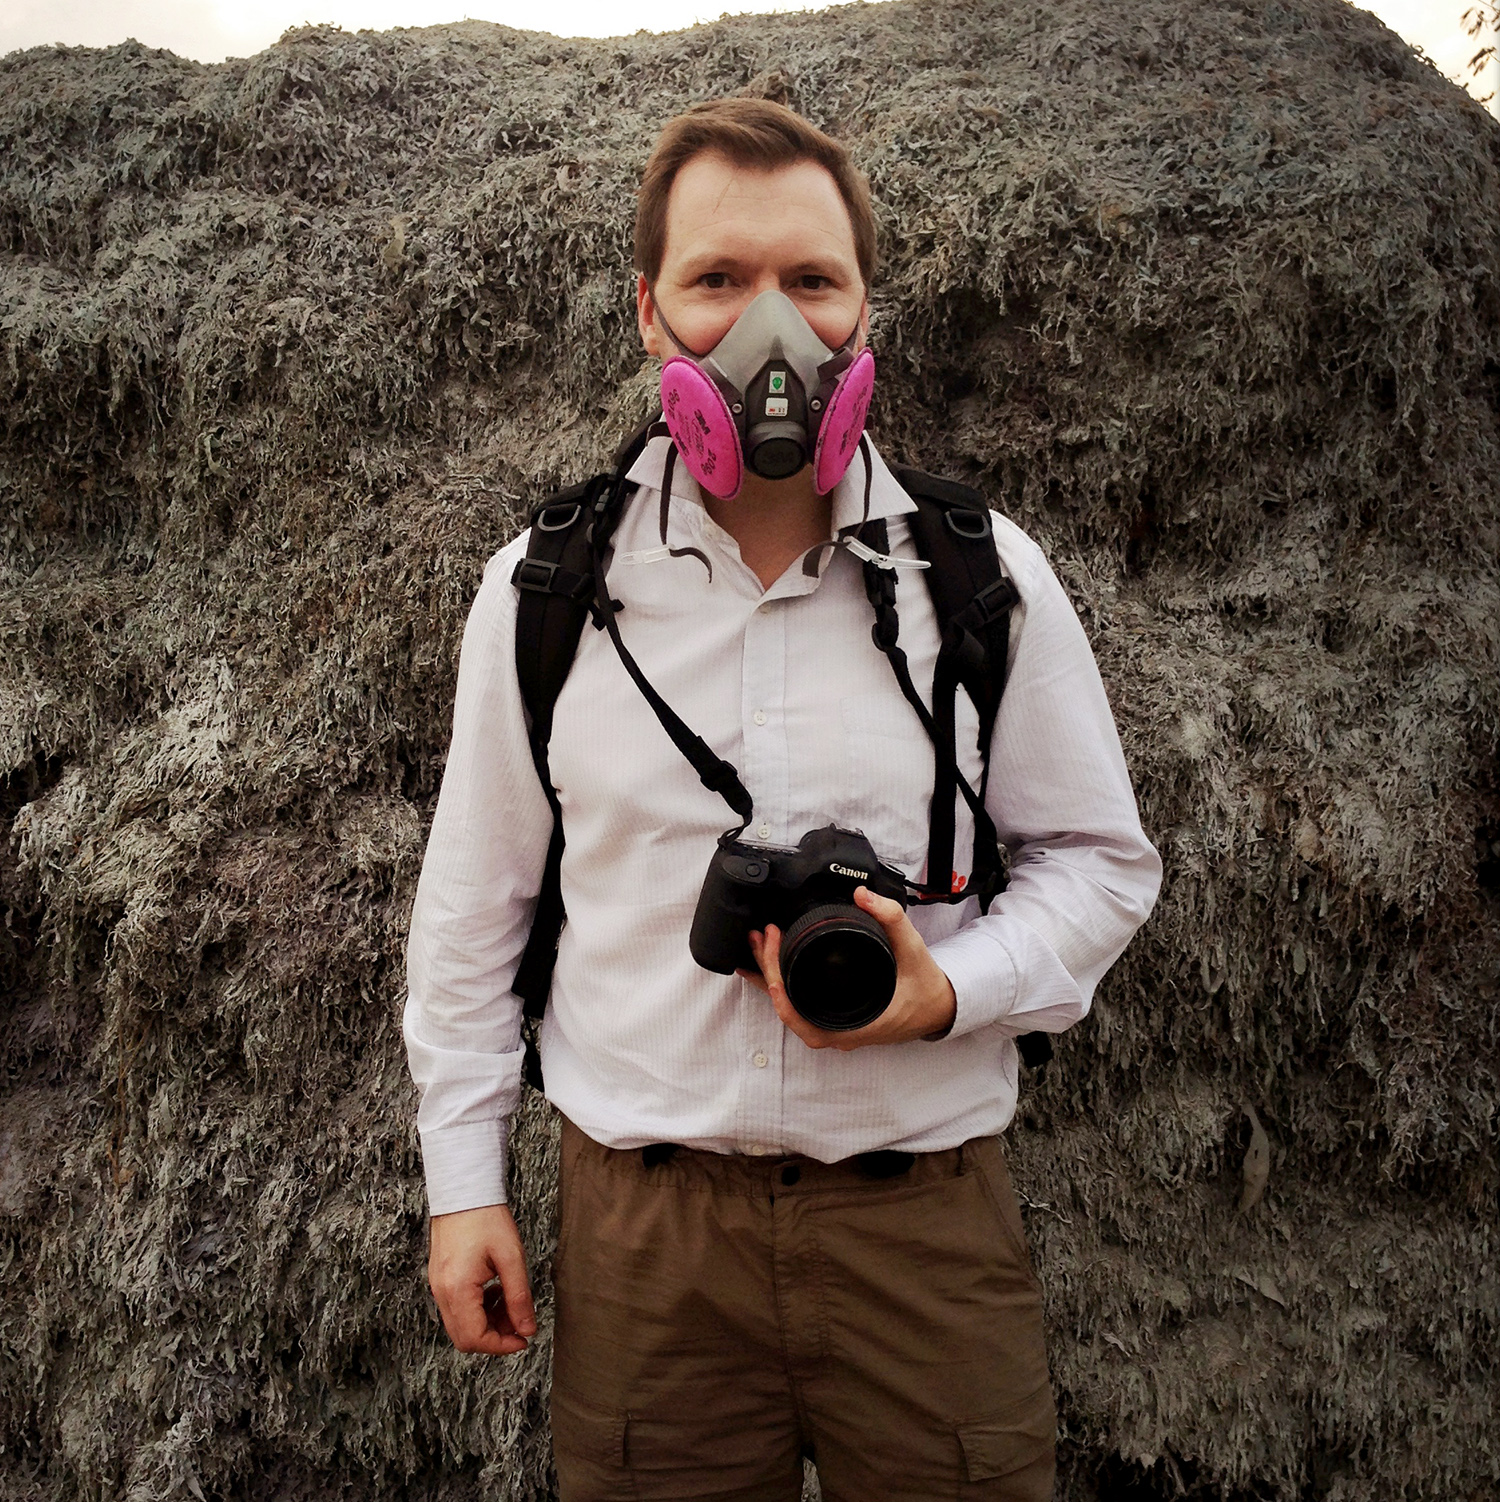 The symbiosis of photography and video – APhotojournalist's Perspective